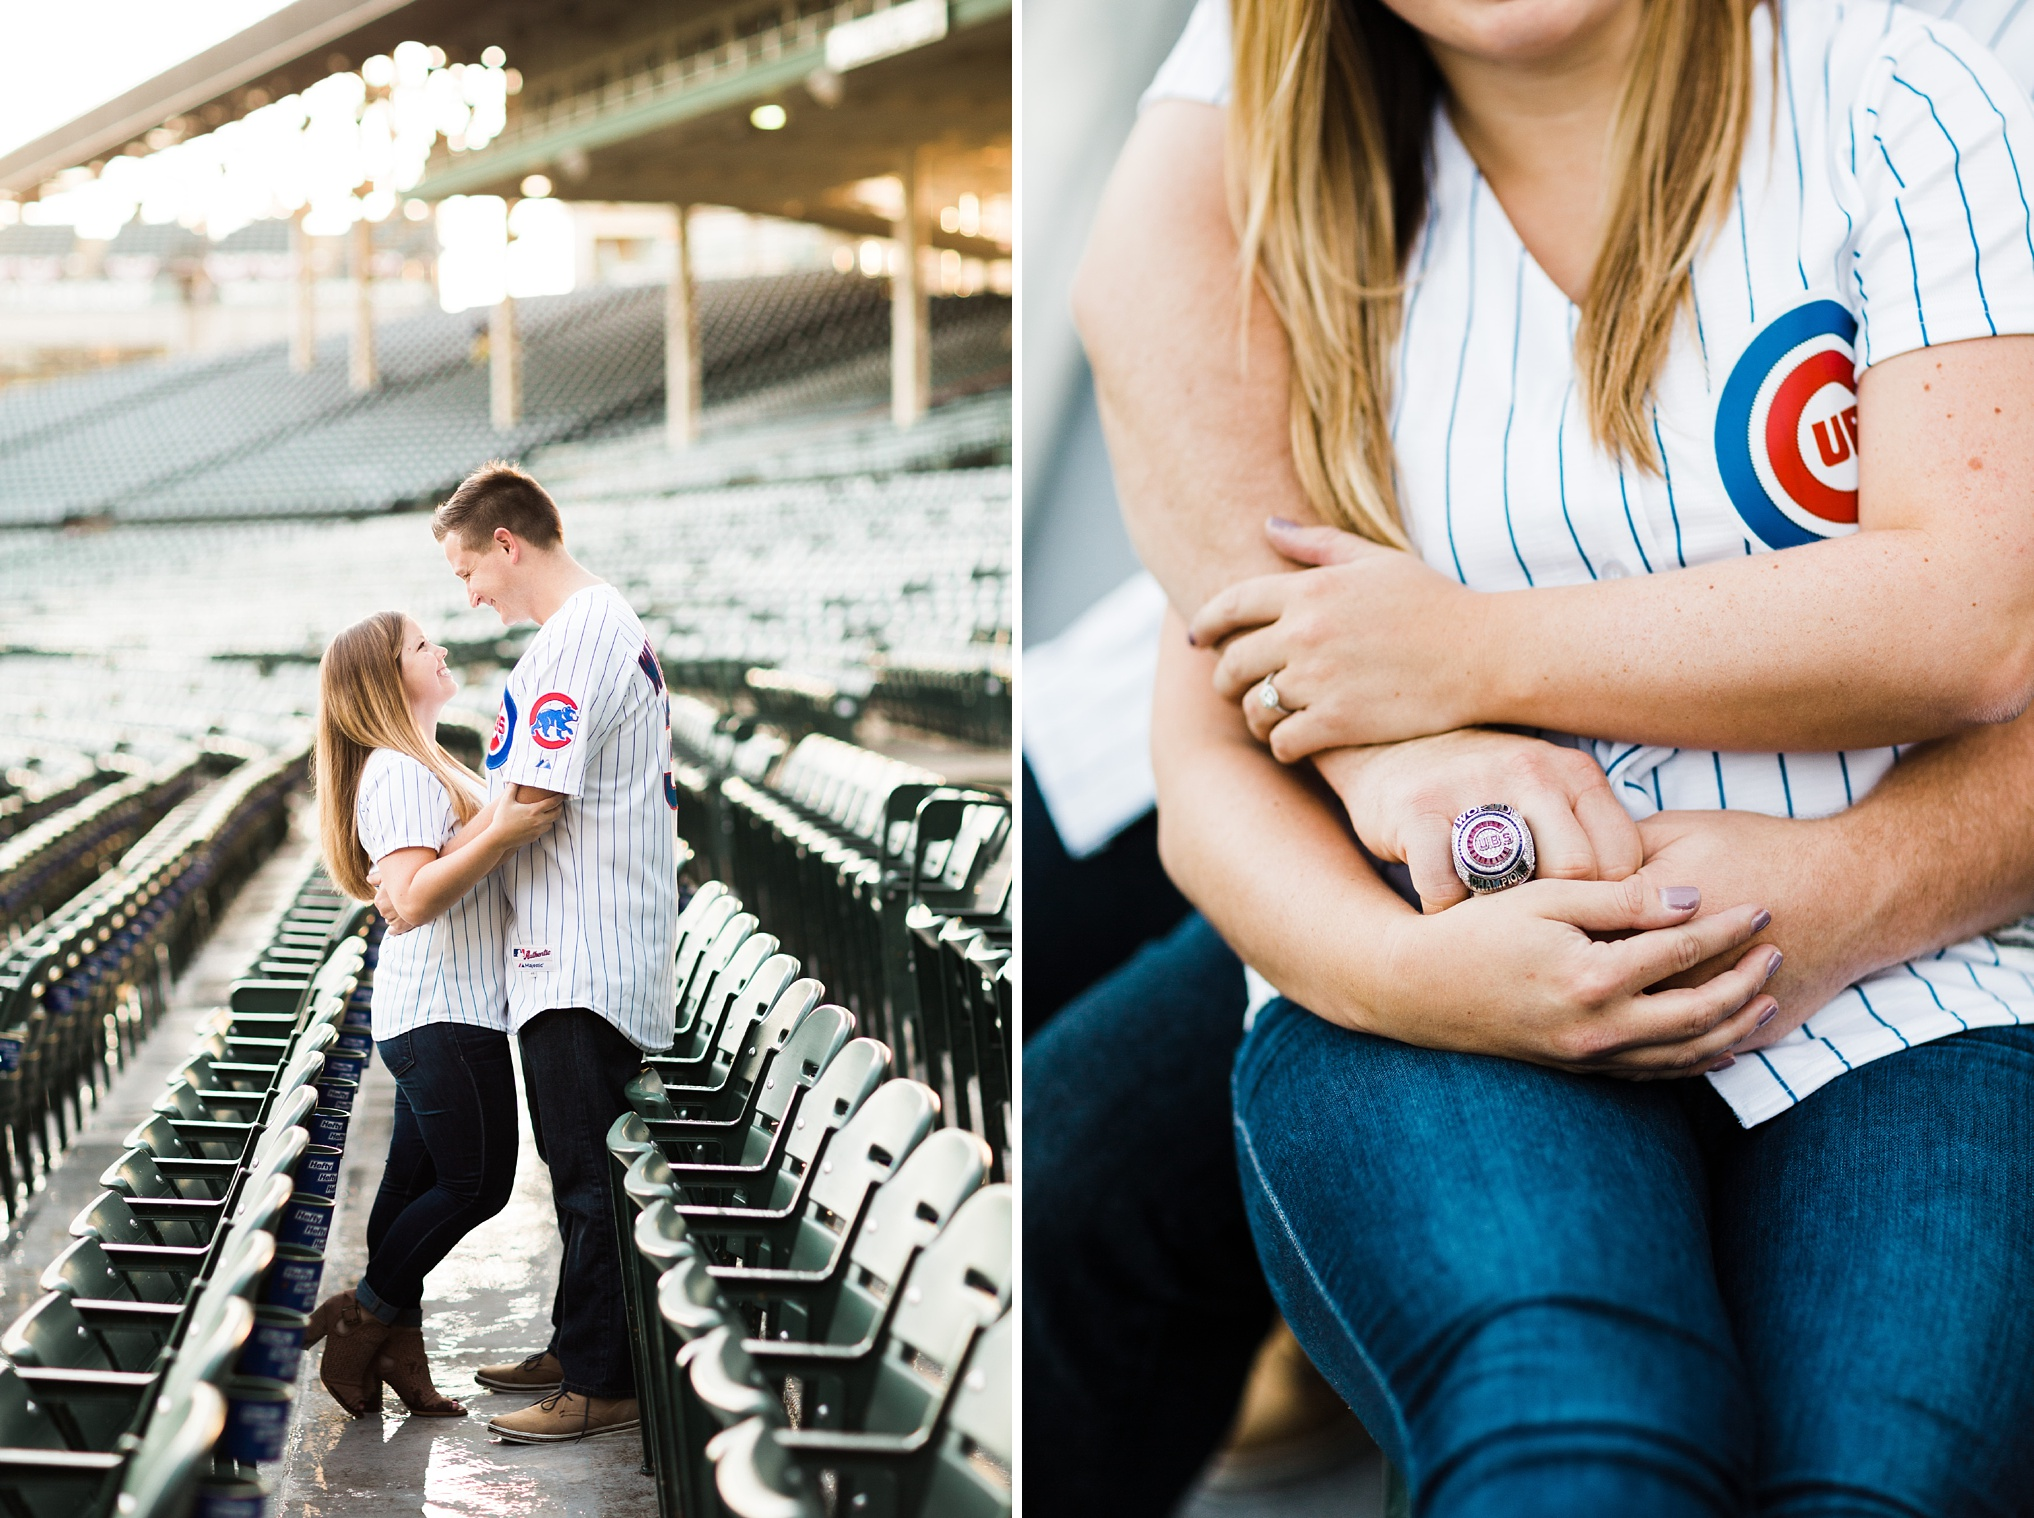 RebeccaHaleyPhotography_ChicagoWeddingPhotographer_ChicagoElopmentPhotographer_ChicagoEngagementSession_ChicagoSkyline_ChicagoPhotographer_0179.jpg